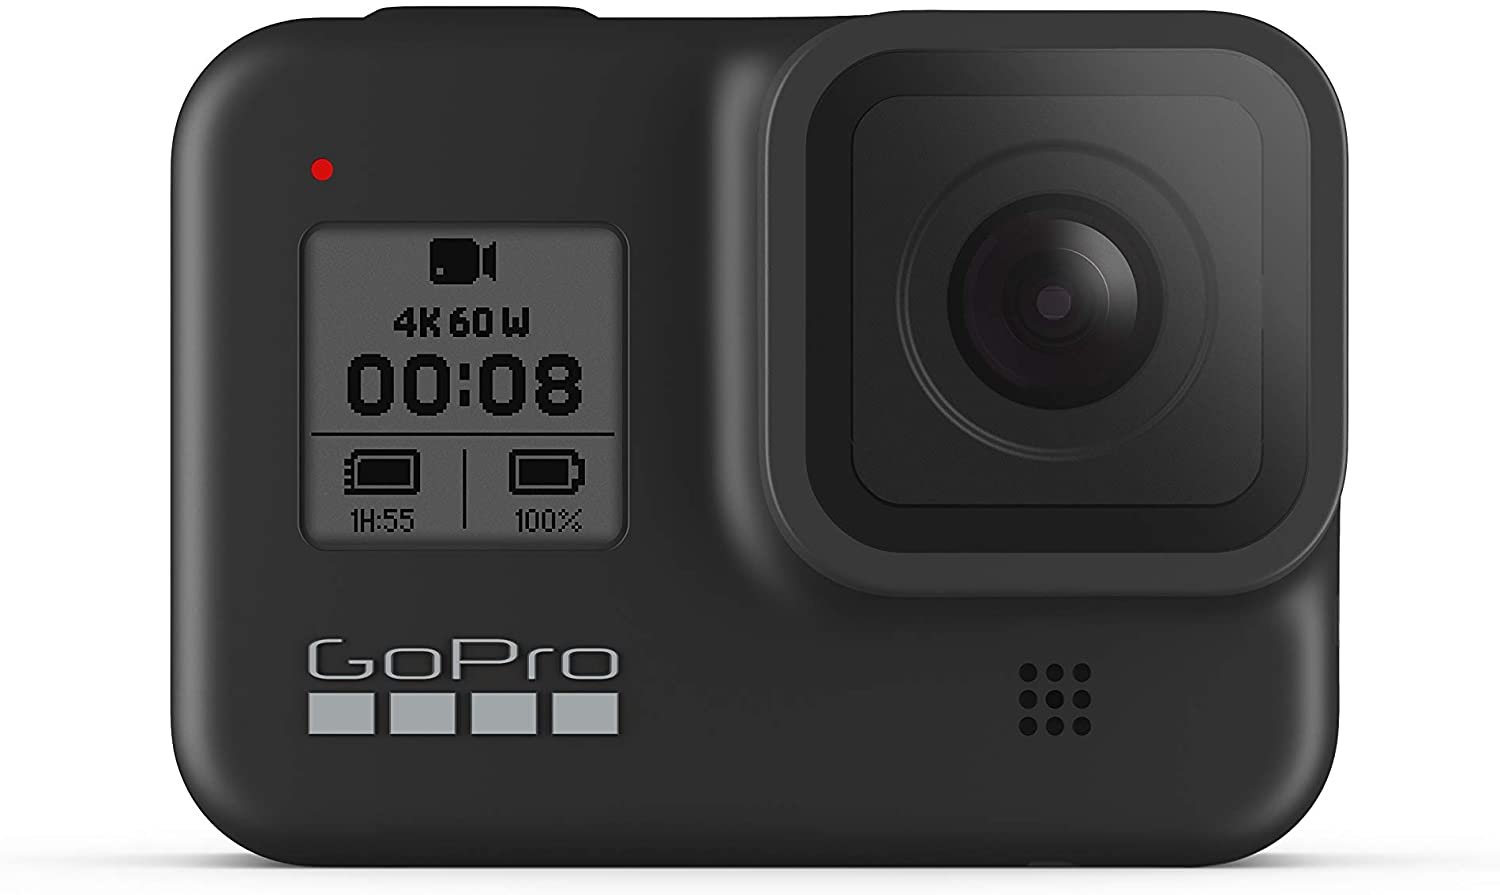 Amazon Com Gopro Hero8 Black Waterproof Action Camera With Touch Screen 4k Ultra Hd Video 12mp Photos 1080p Live Streaming Stabilization Camera Photo